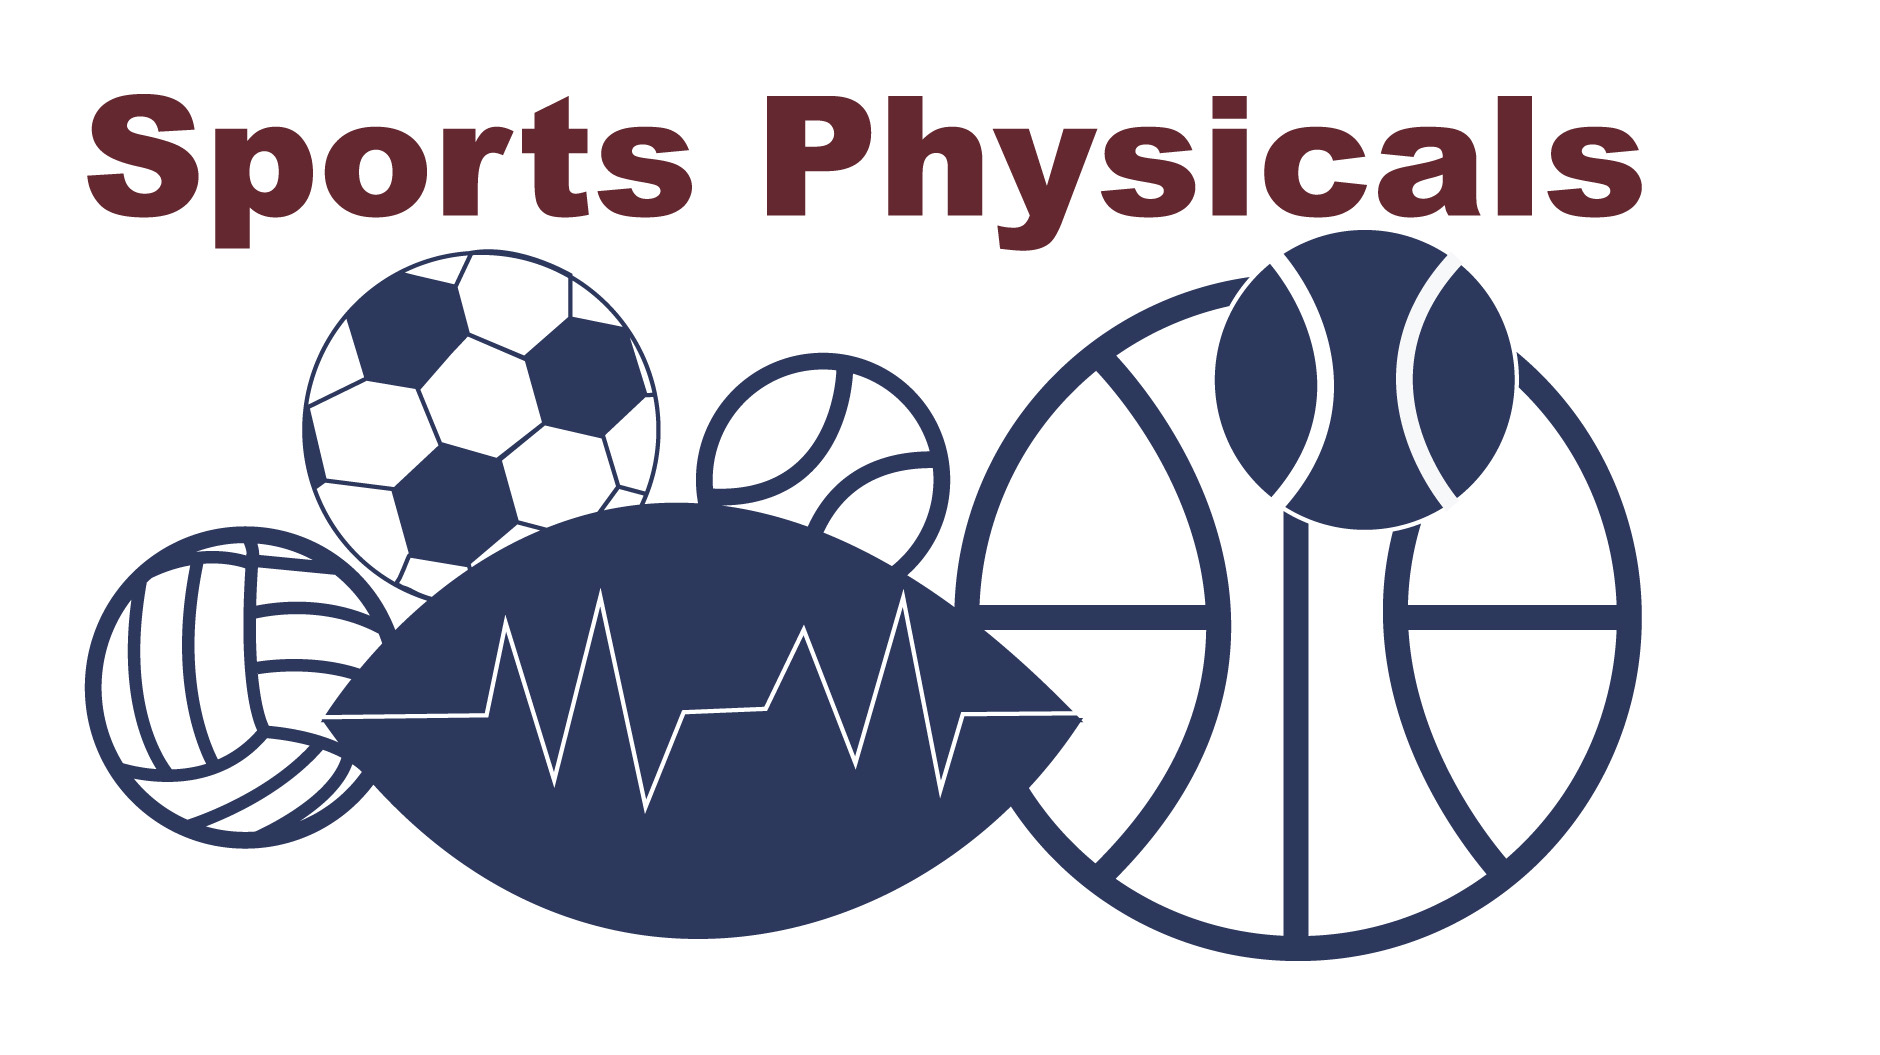 Get your physicals!